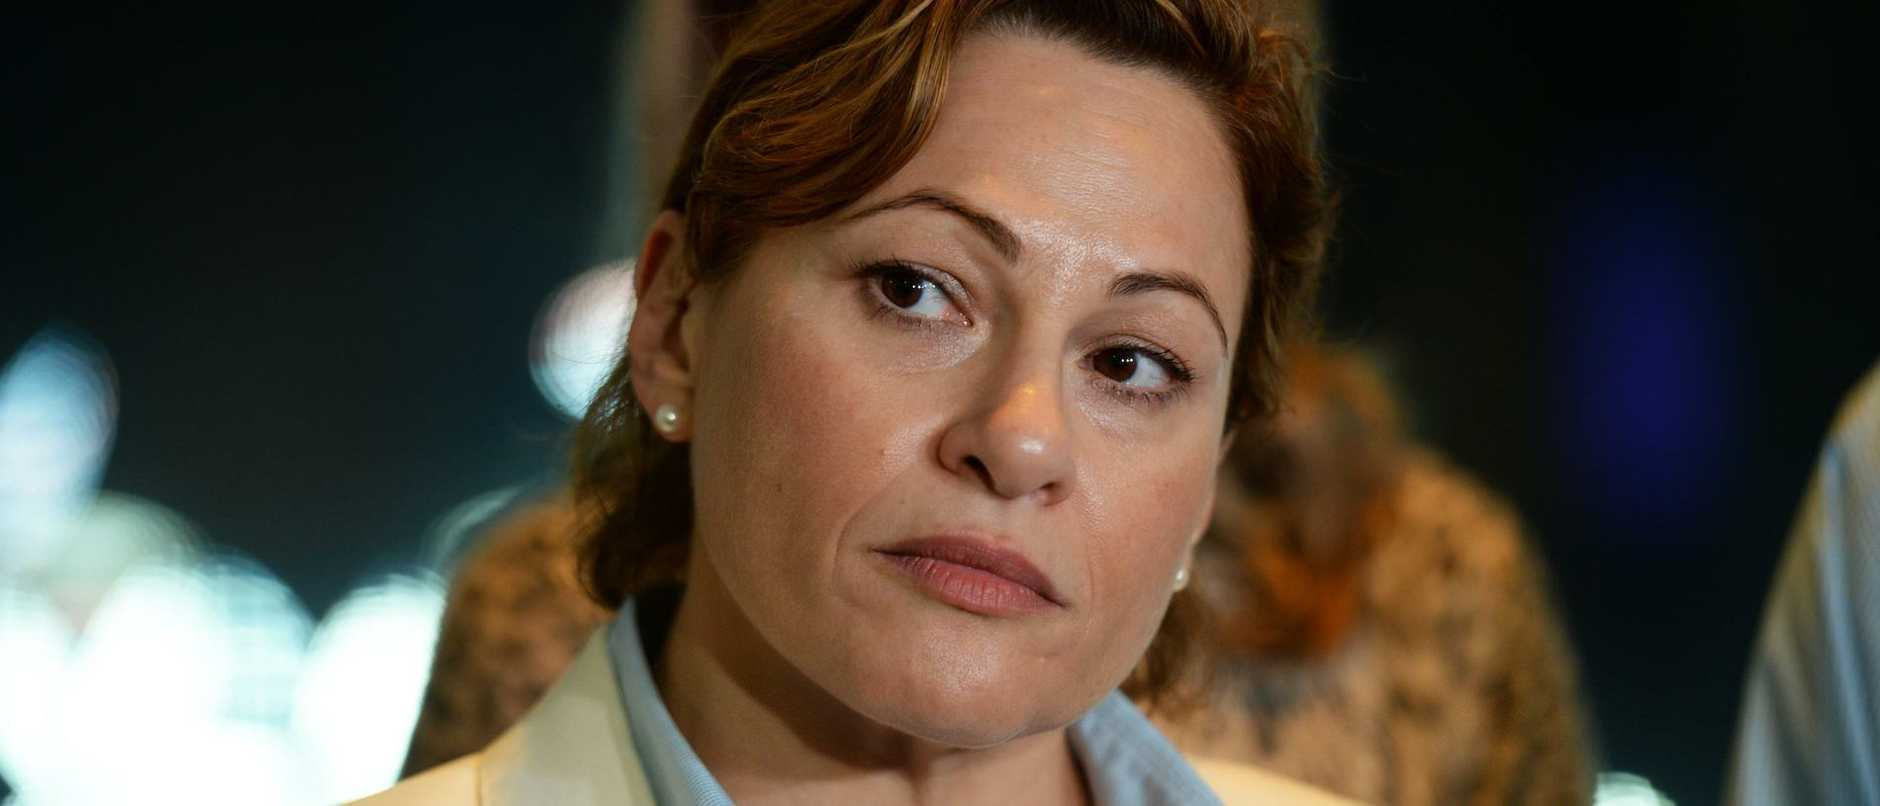 Jackie Trad may face a fresh probe over her purchase of a property near the Cross River Rail project after she was referred to the Ethics Committee.